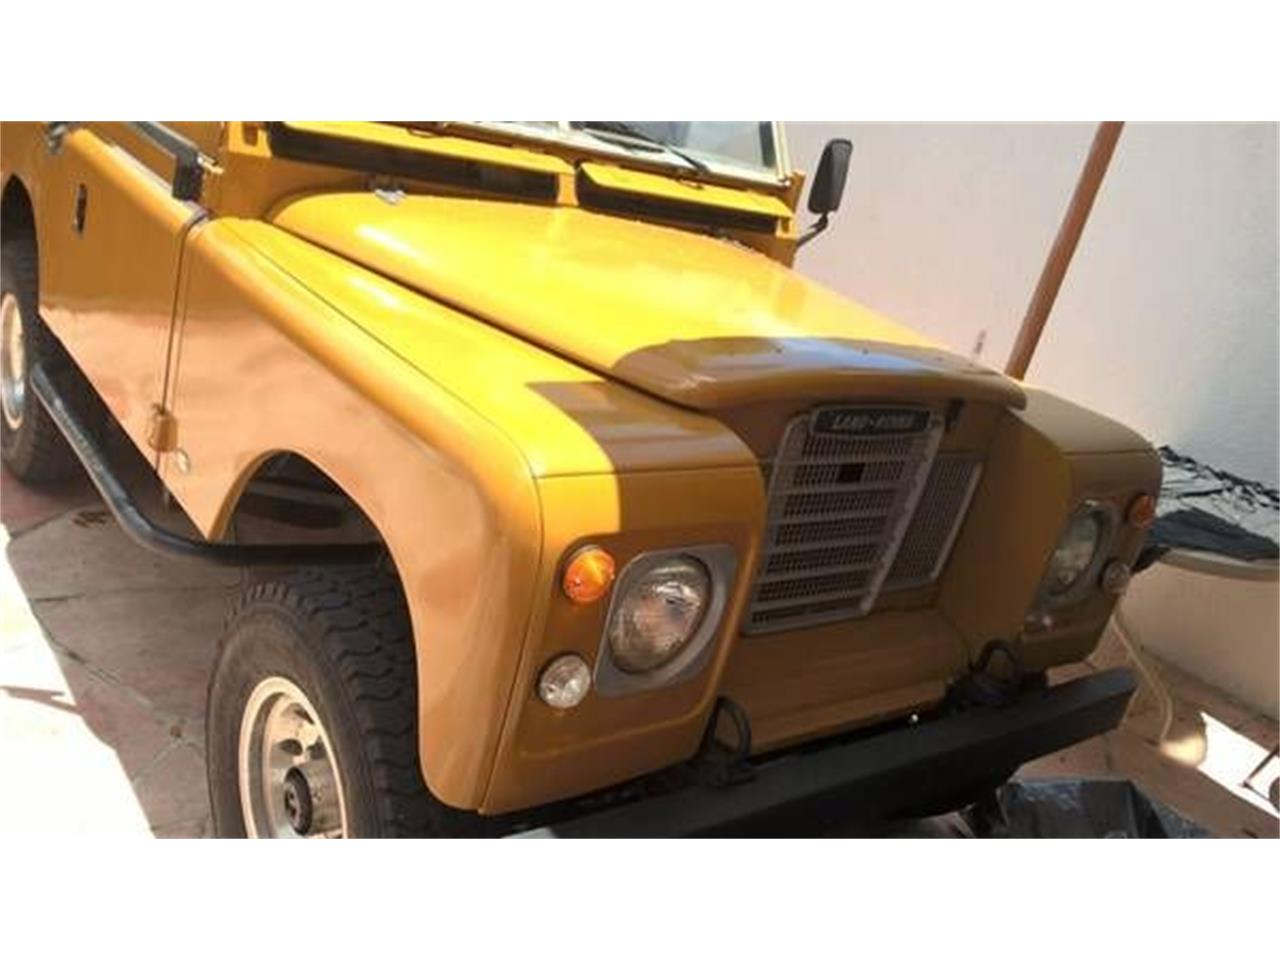 1974 Land Rover Series IIA for sale in Cadillac, MI – photo 9